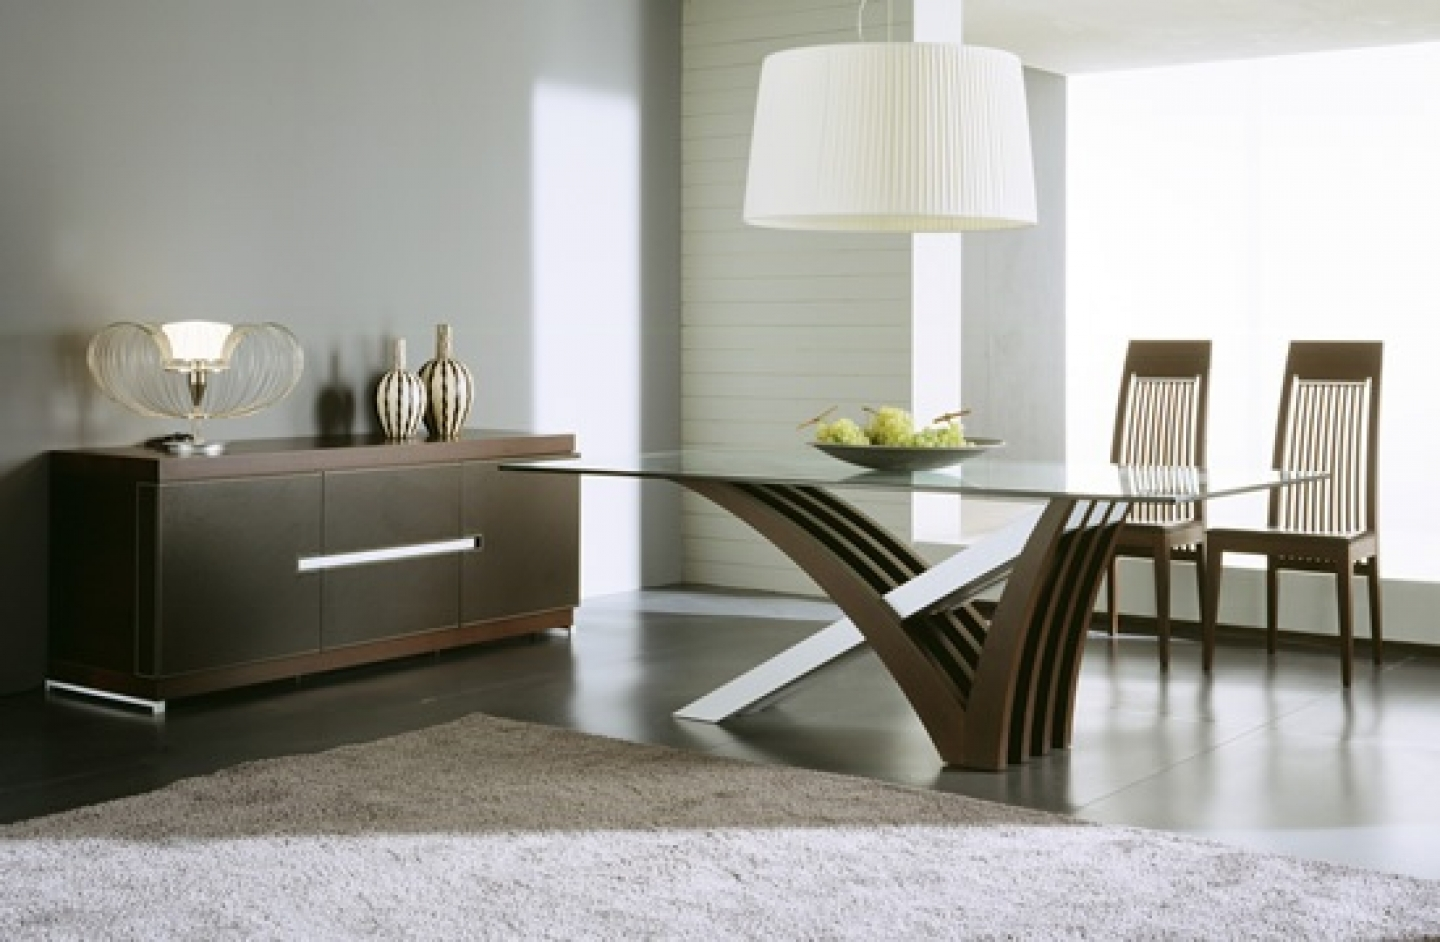 Teak patio furniture at home decor dream house for Contemporary items for the home